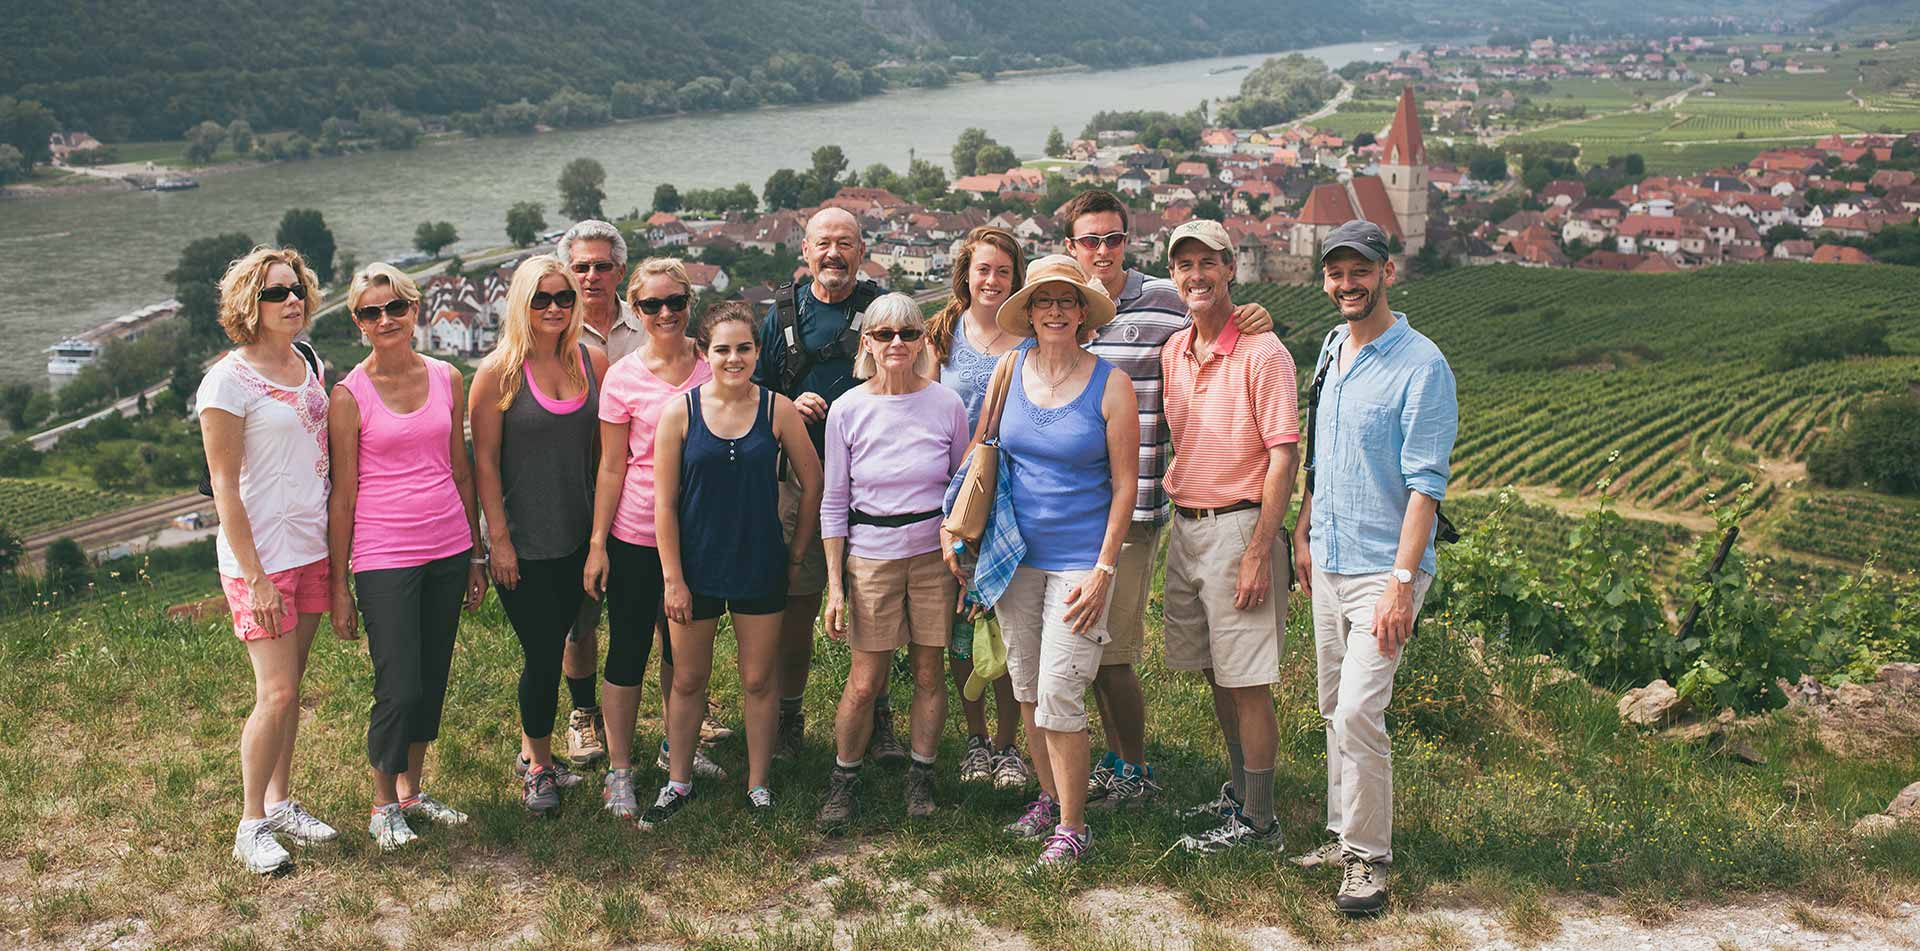 Group on a Hill Overlooking a Small Village in Croatia